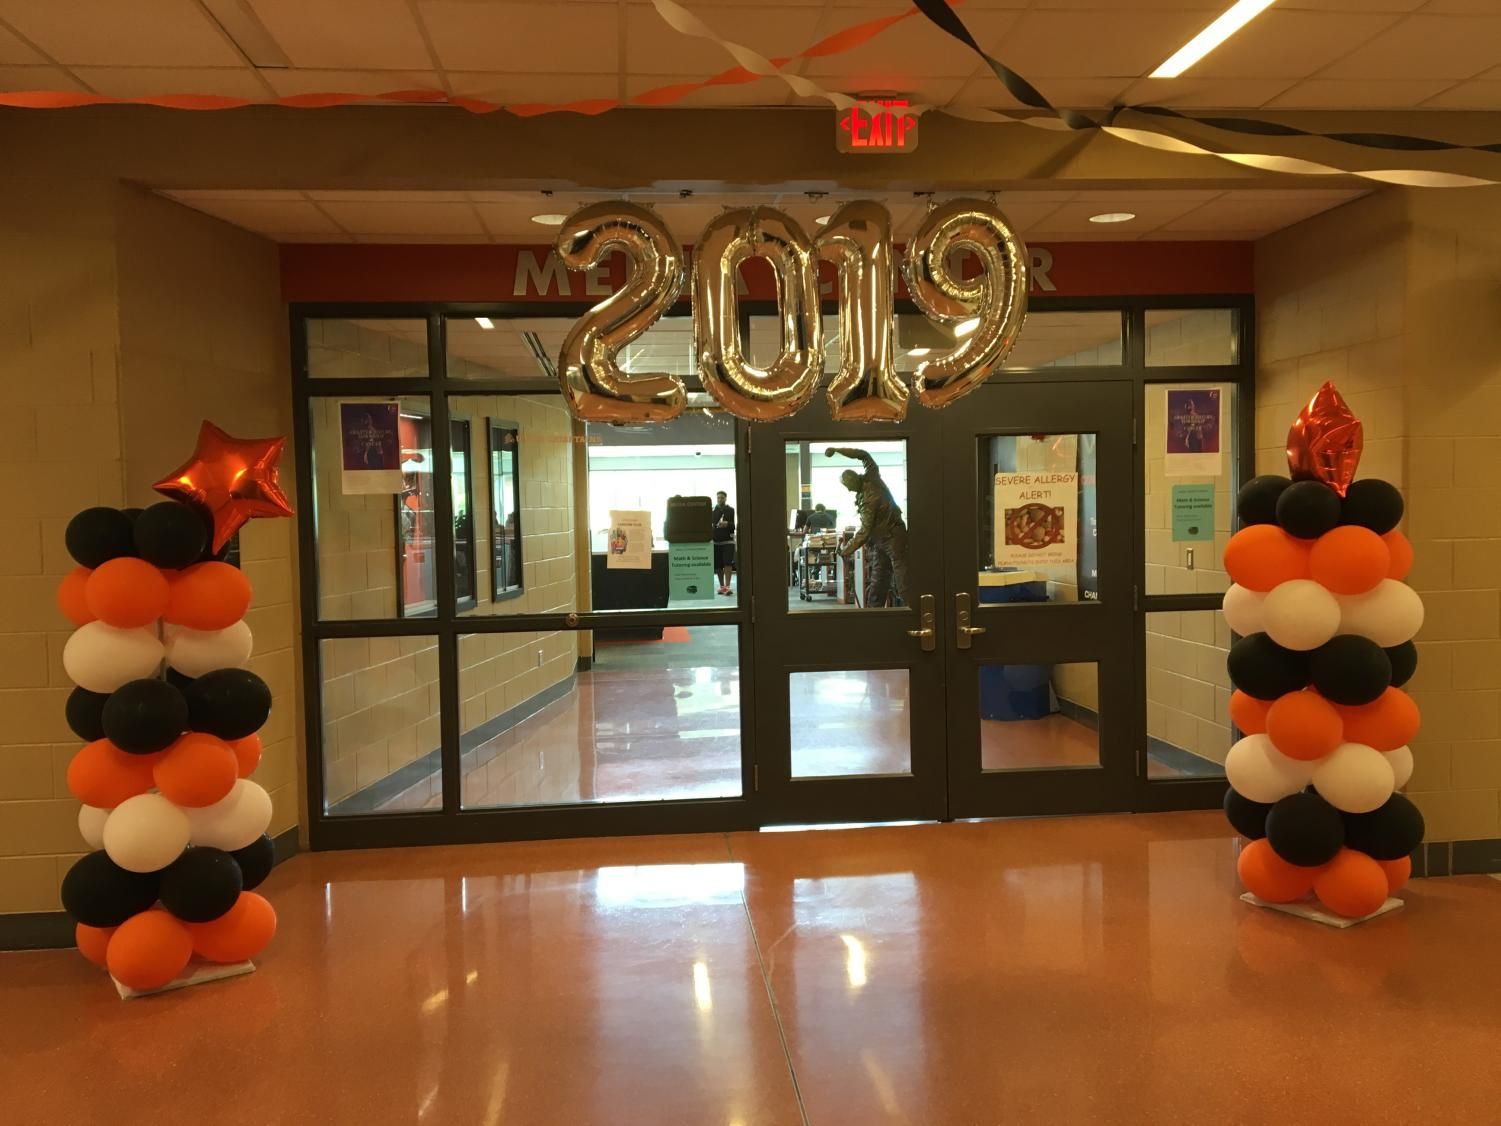 Student Council decorated the halls to help promote senior spirit week.